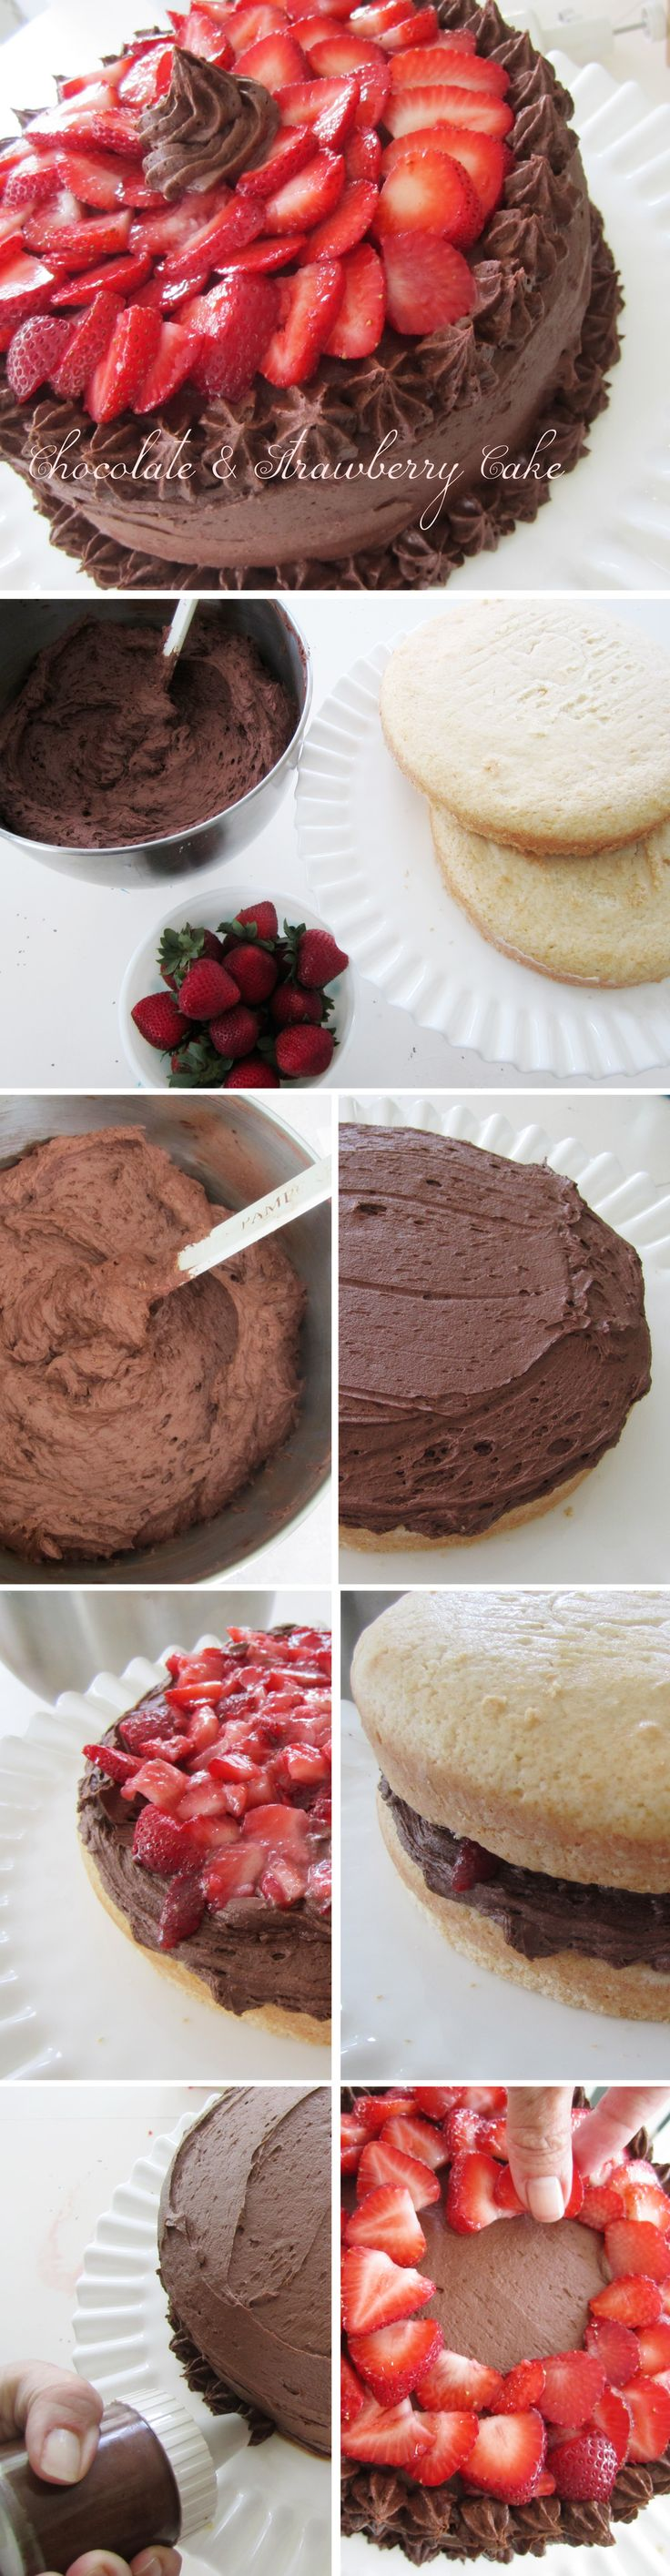 Best 20+ Chocolate cake with strawberries ideas on Pinterest ...